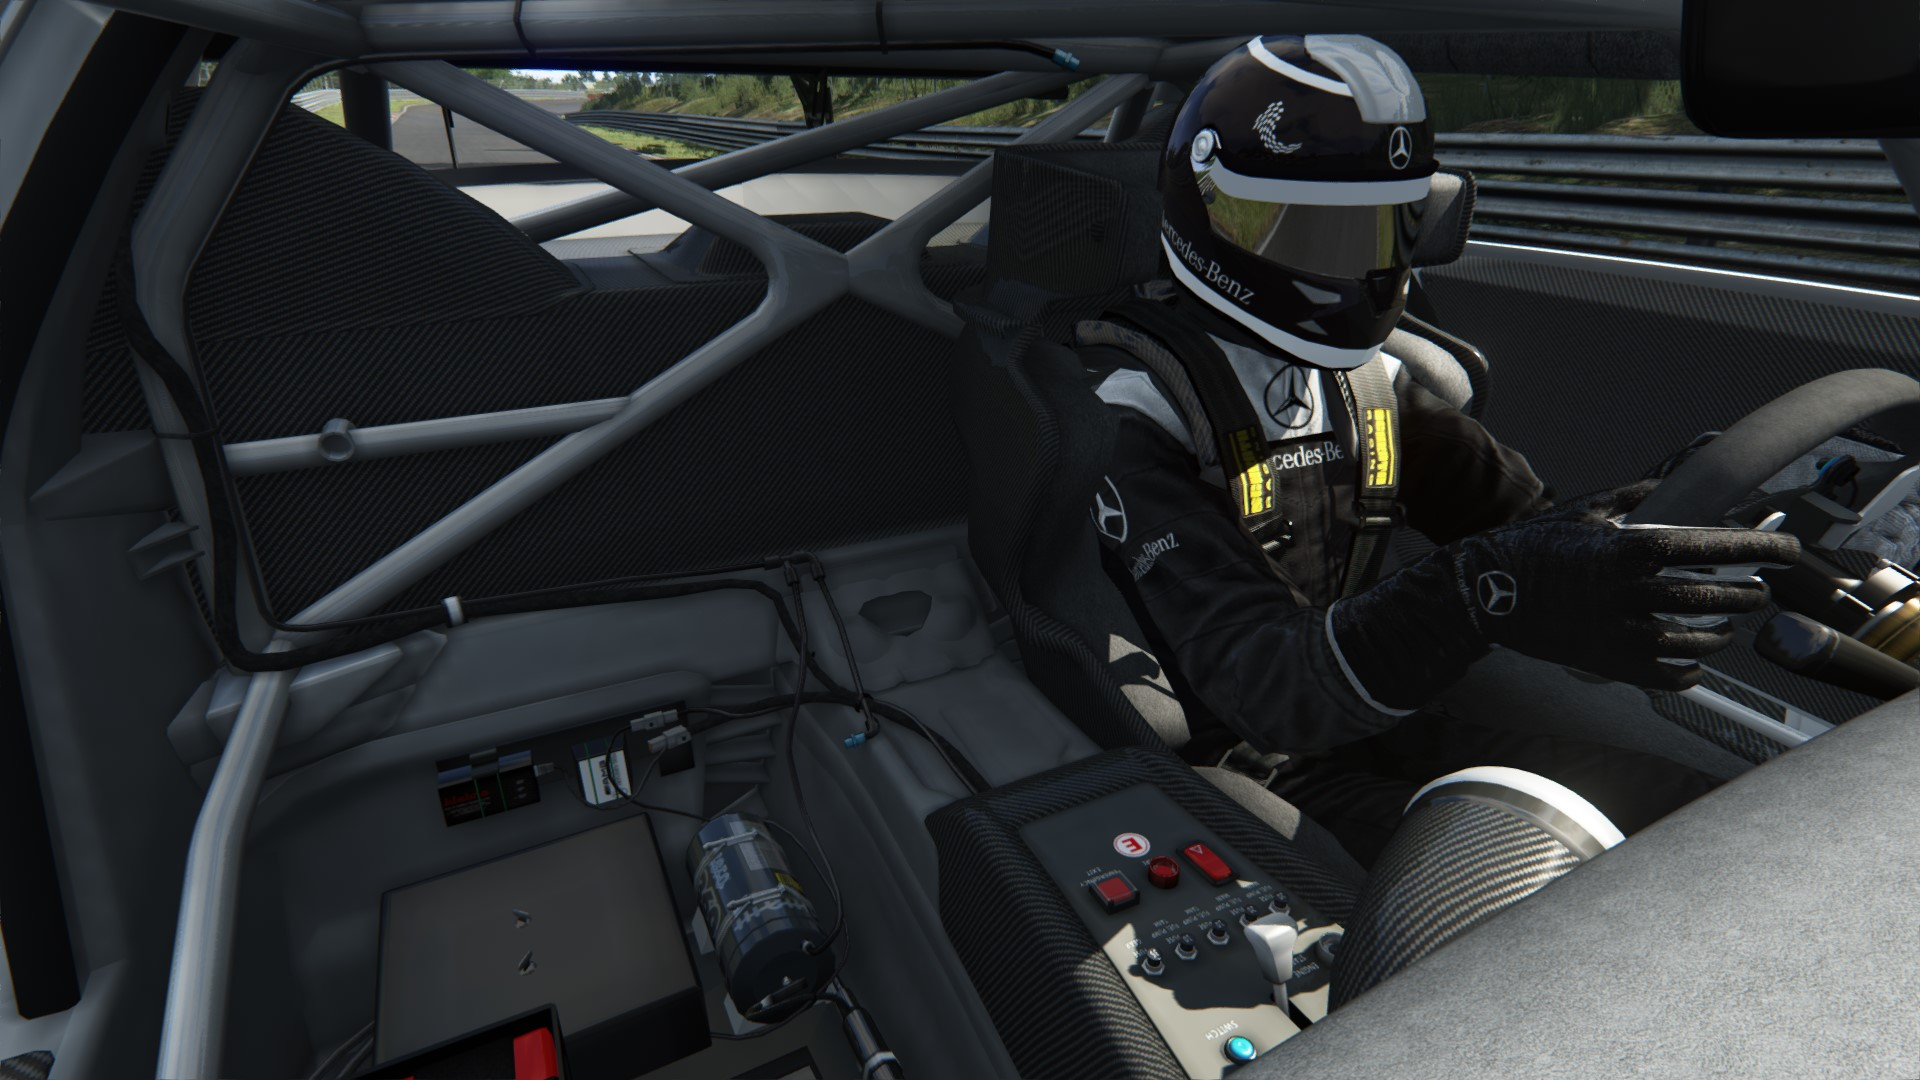 Screenshot_mercedes_sls_gt3_ks_nordschleife_11-4-116-22-54-49.jpg